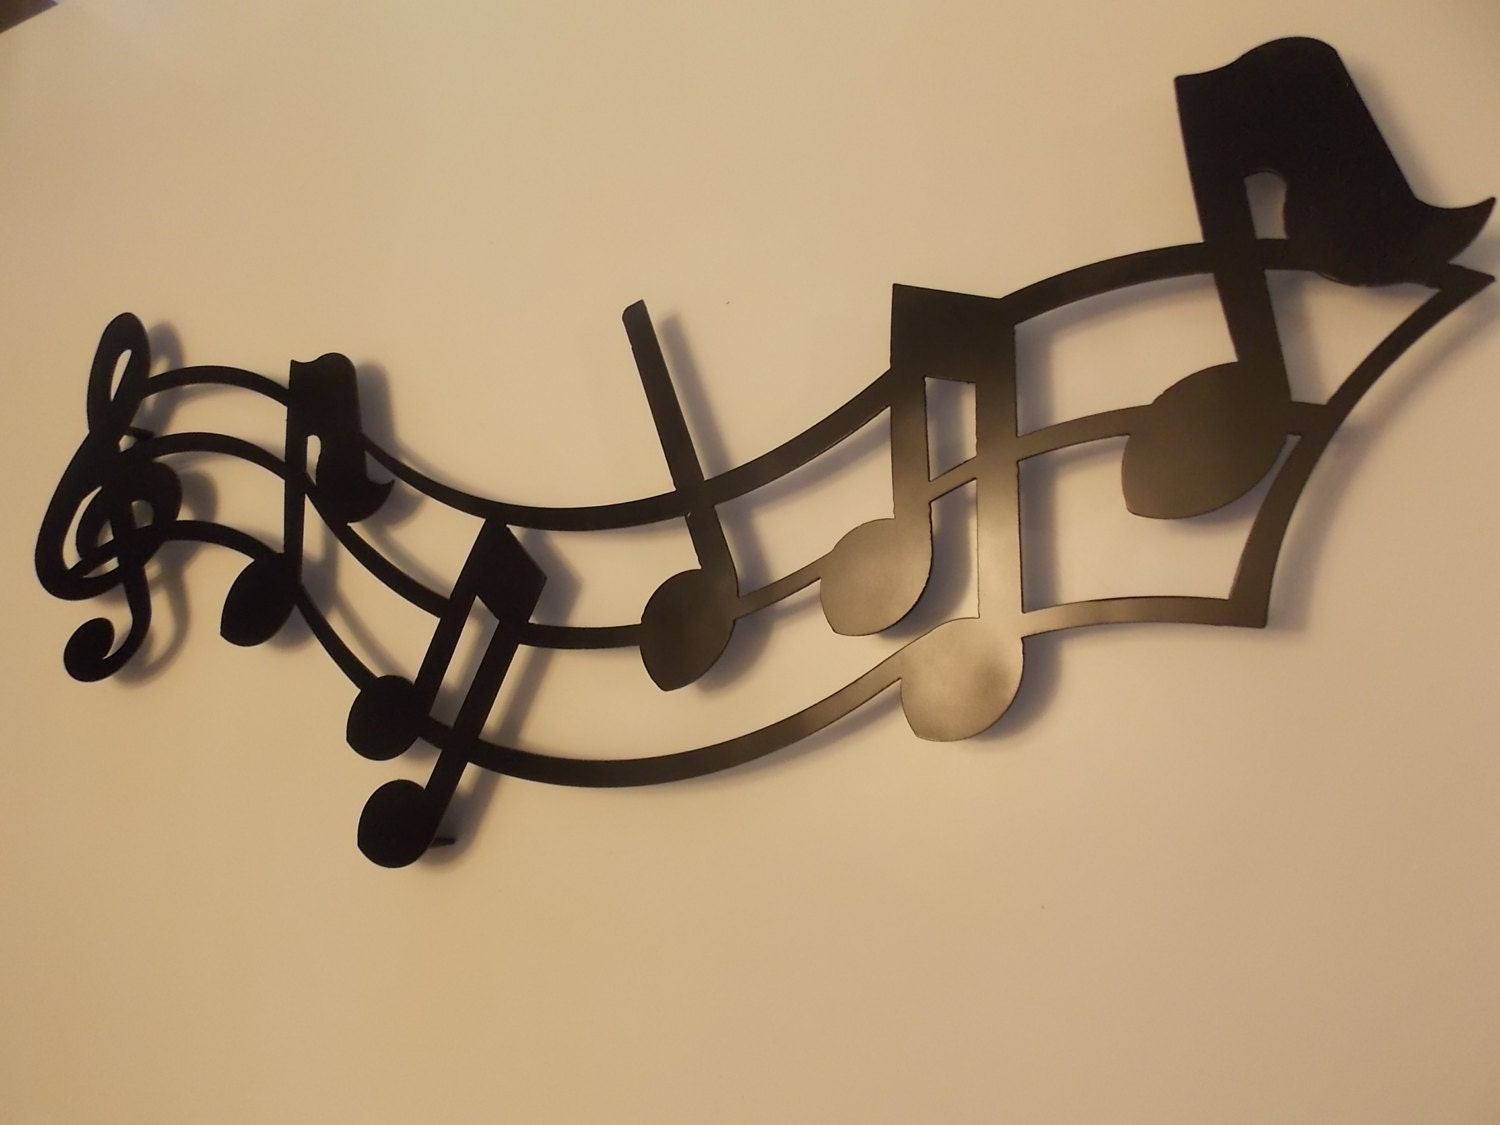 Surprising Music Wall Decor Photos Design Ideas – Dievoon